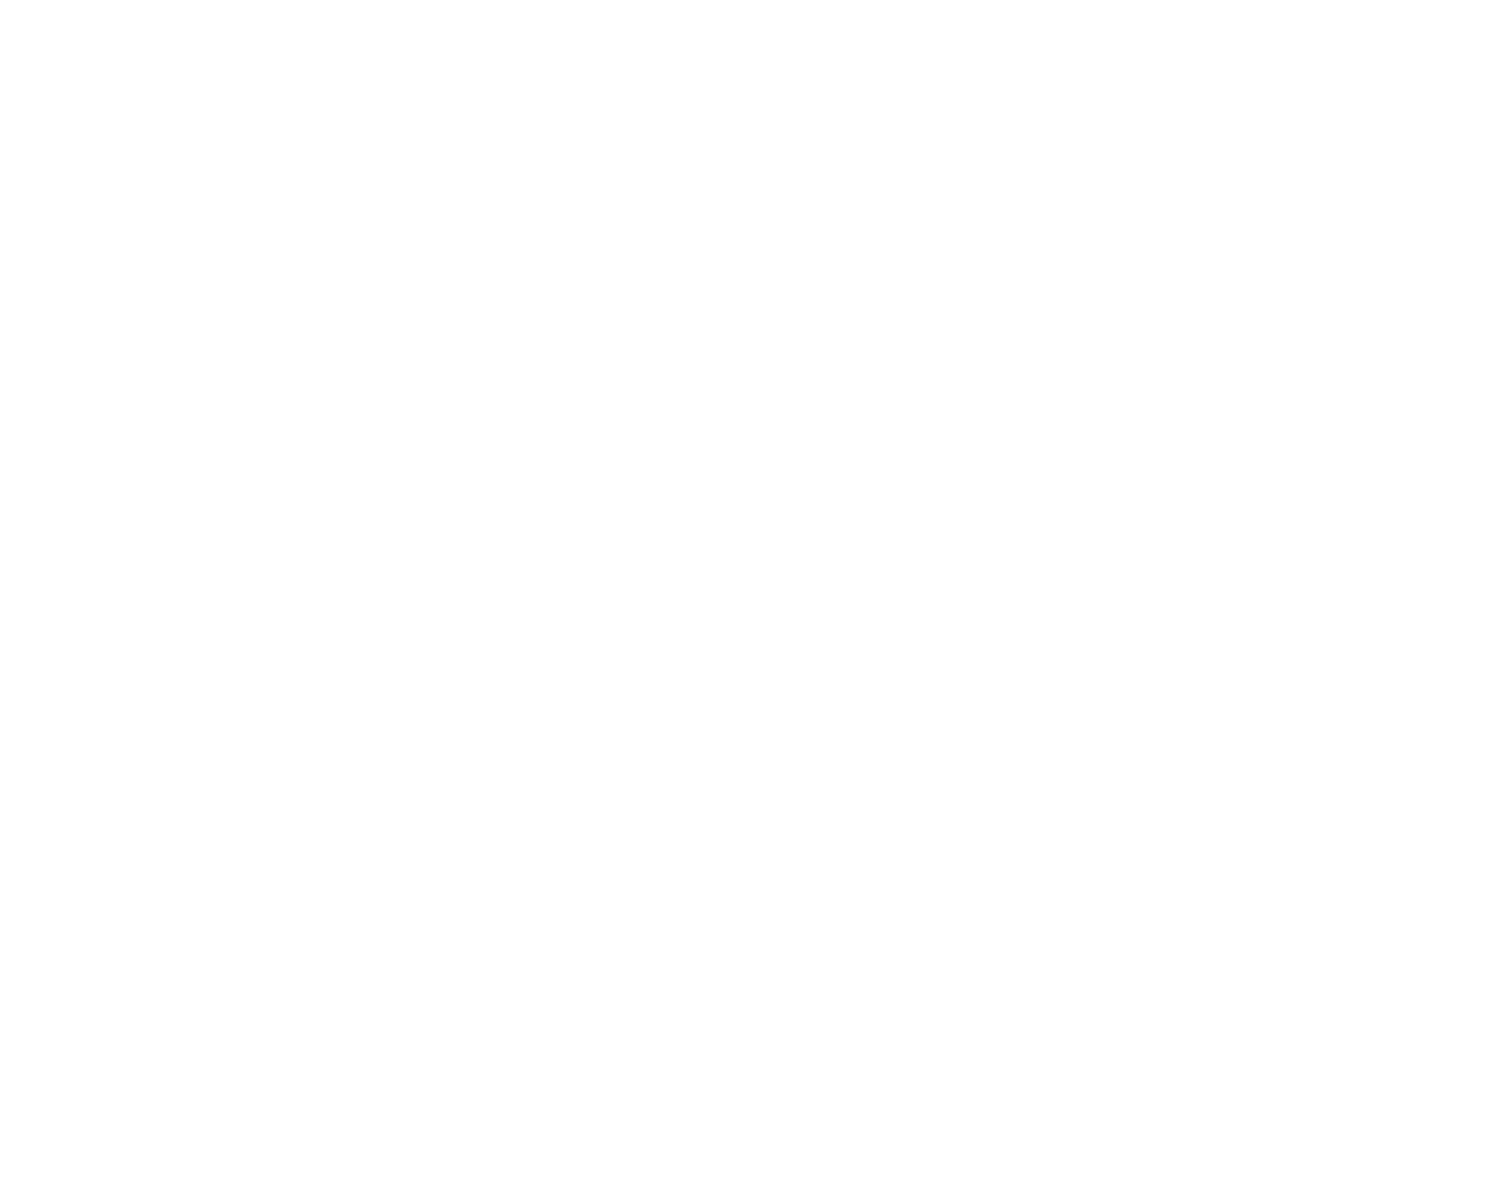 Silverwhisk Cooking